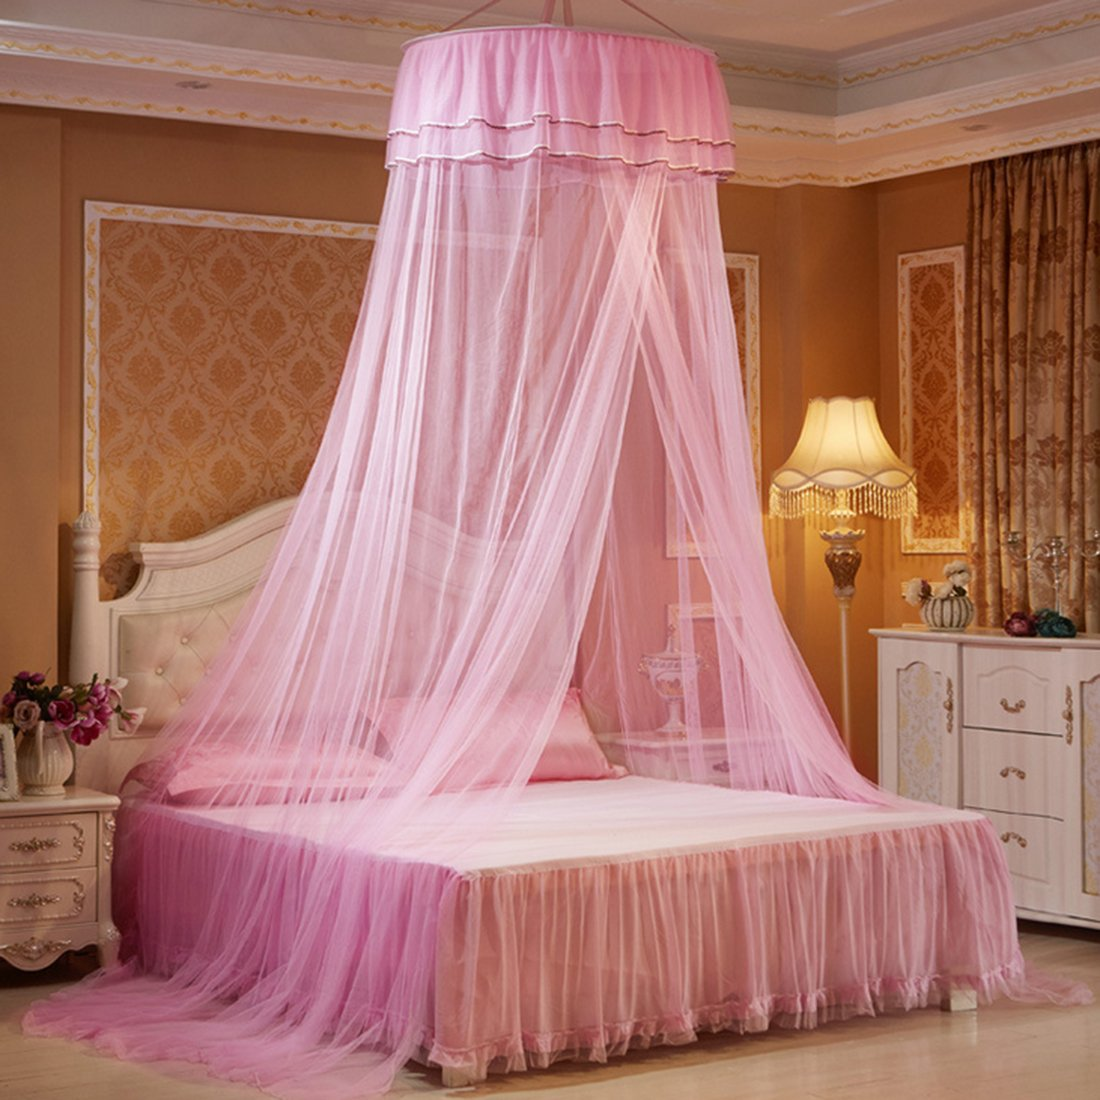 PeleusTech Hanging Mosquito Net Princess Bed Canopy Netting with Elegant Lace Dome - White